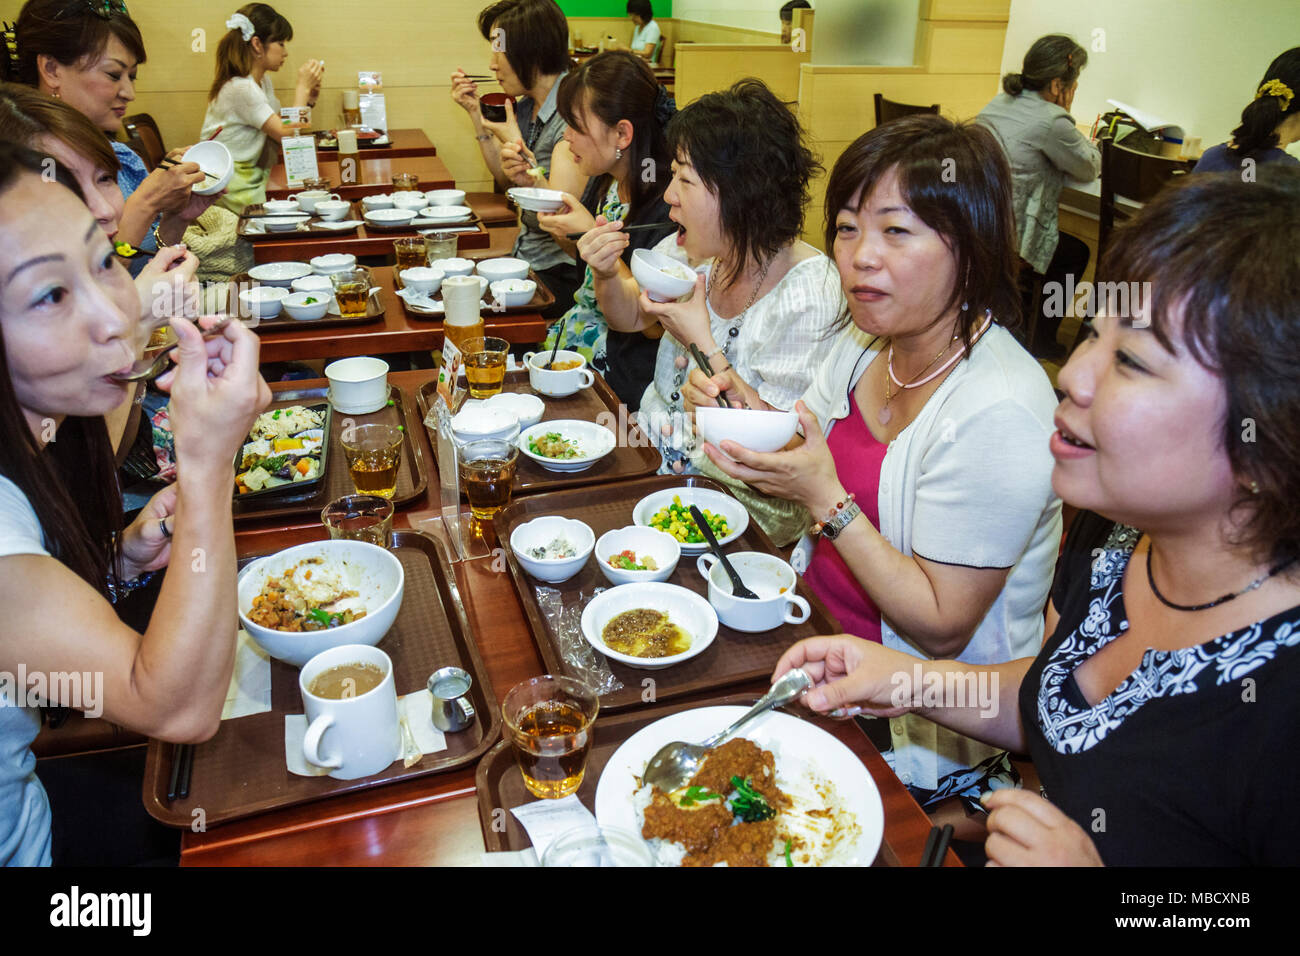 Tokyo Japan Shinjuku Shinjuku NS Building restaurant office workers Asian woman women co-workers eating dining - Stock Image